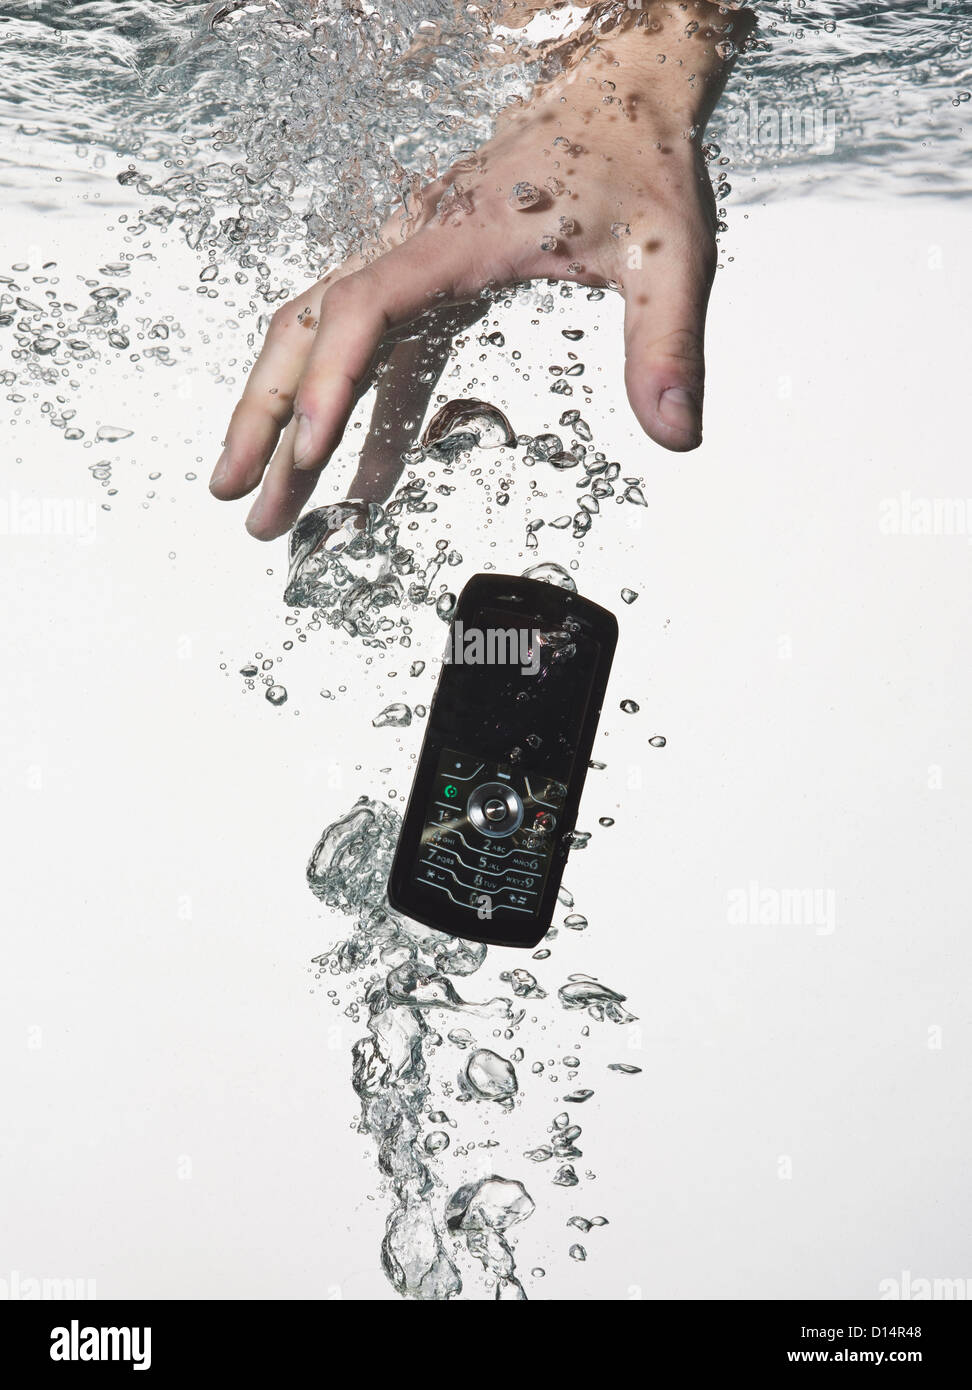 Hand grasping cell phone in water - Stock Image